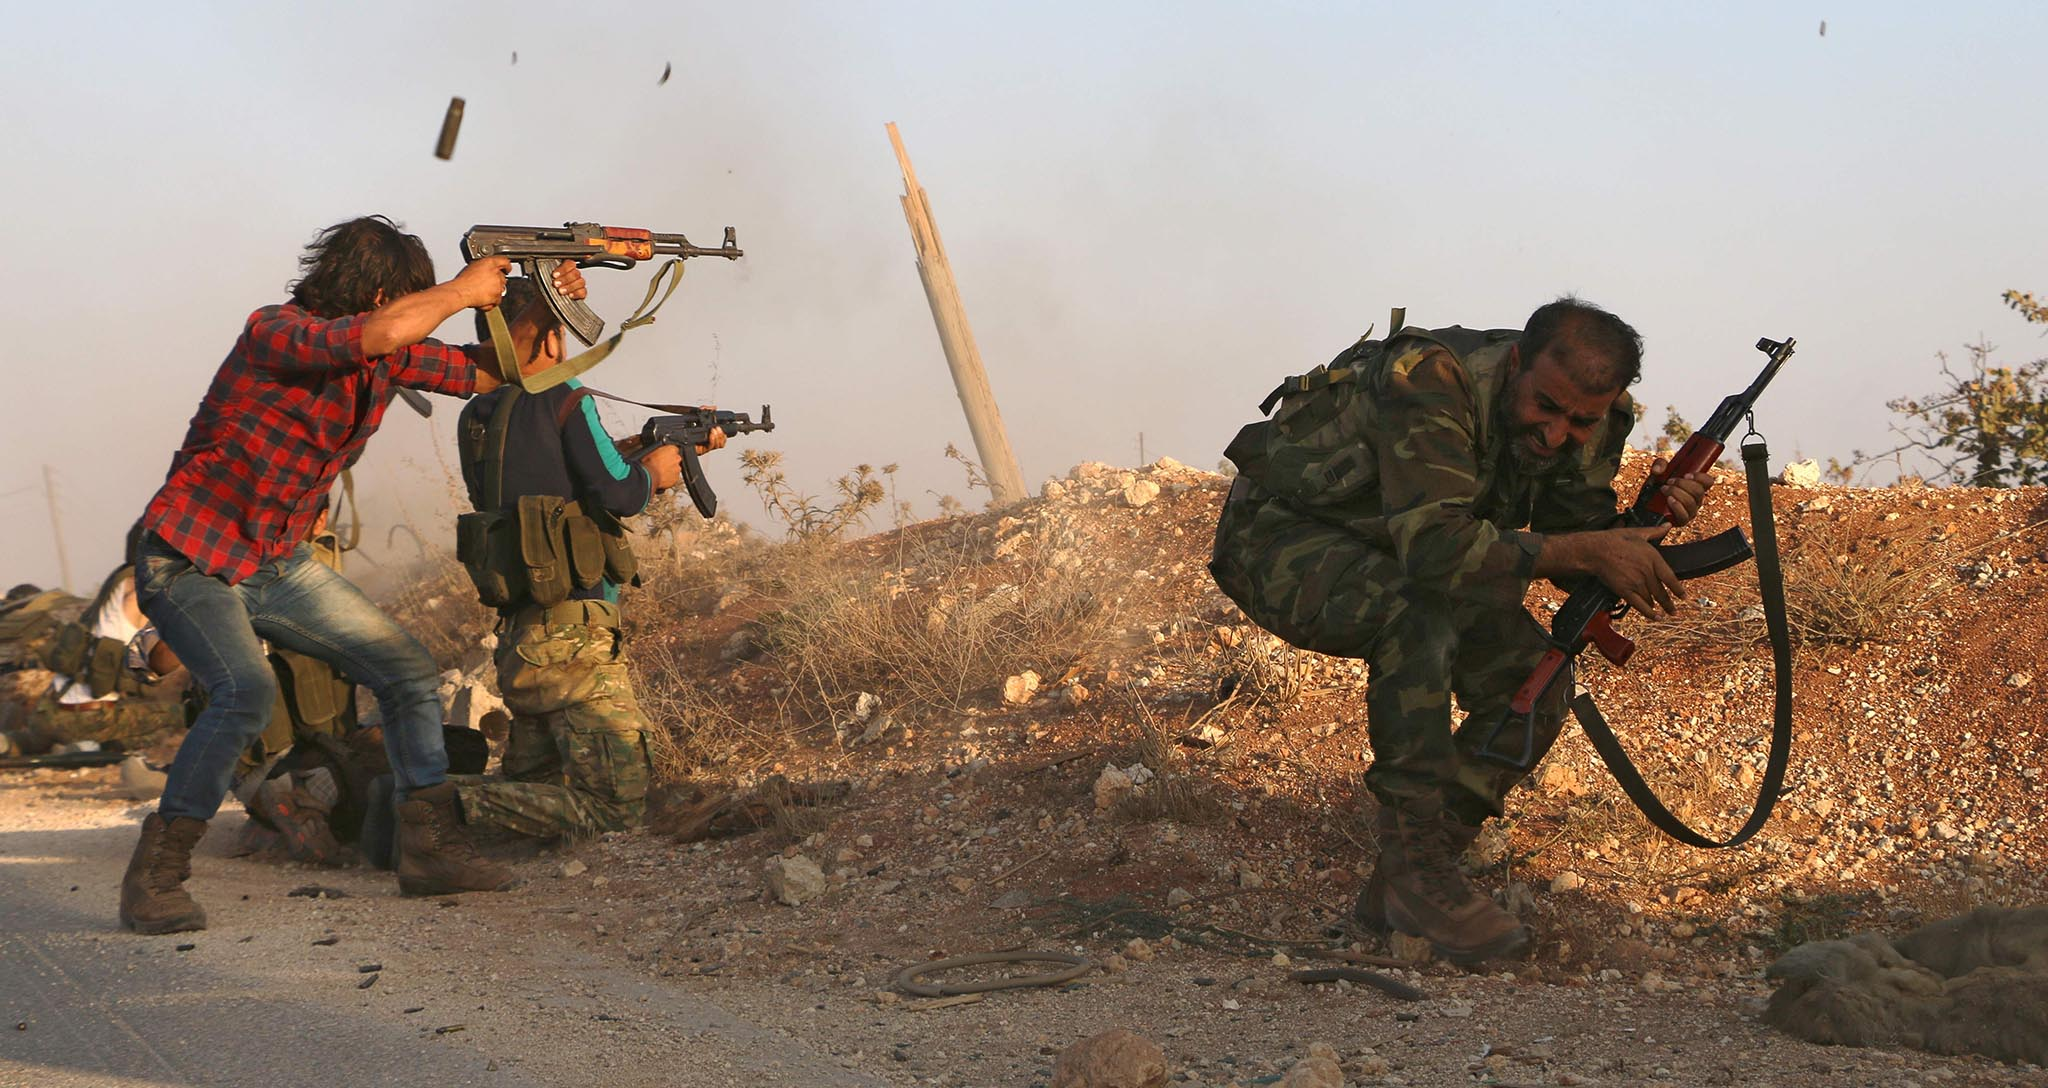 Fighters from the Free Syrian Army take part in a battle against the Islamic State (IS) group jihadists in the northern Syrian village of Yahmoul in the Marj Dabiq area north of the embattled city of Aleppo on October 10, 2016.  Syria's main opposition group called Monday for foreign allies to supply rebel forces with ground-to-air weapons to counter deadly air raids in Aleppo.  / AFP PHOTO / Nazeer al-KhatibNAZEER AL-KHATIB/AFP/Getty Images